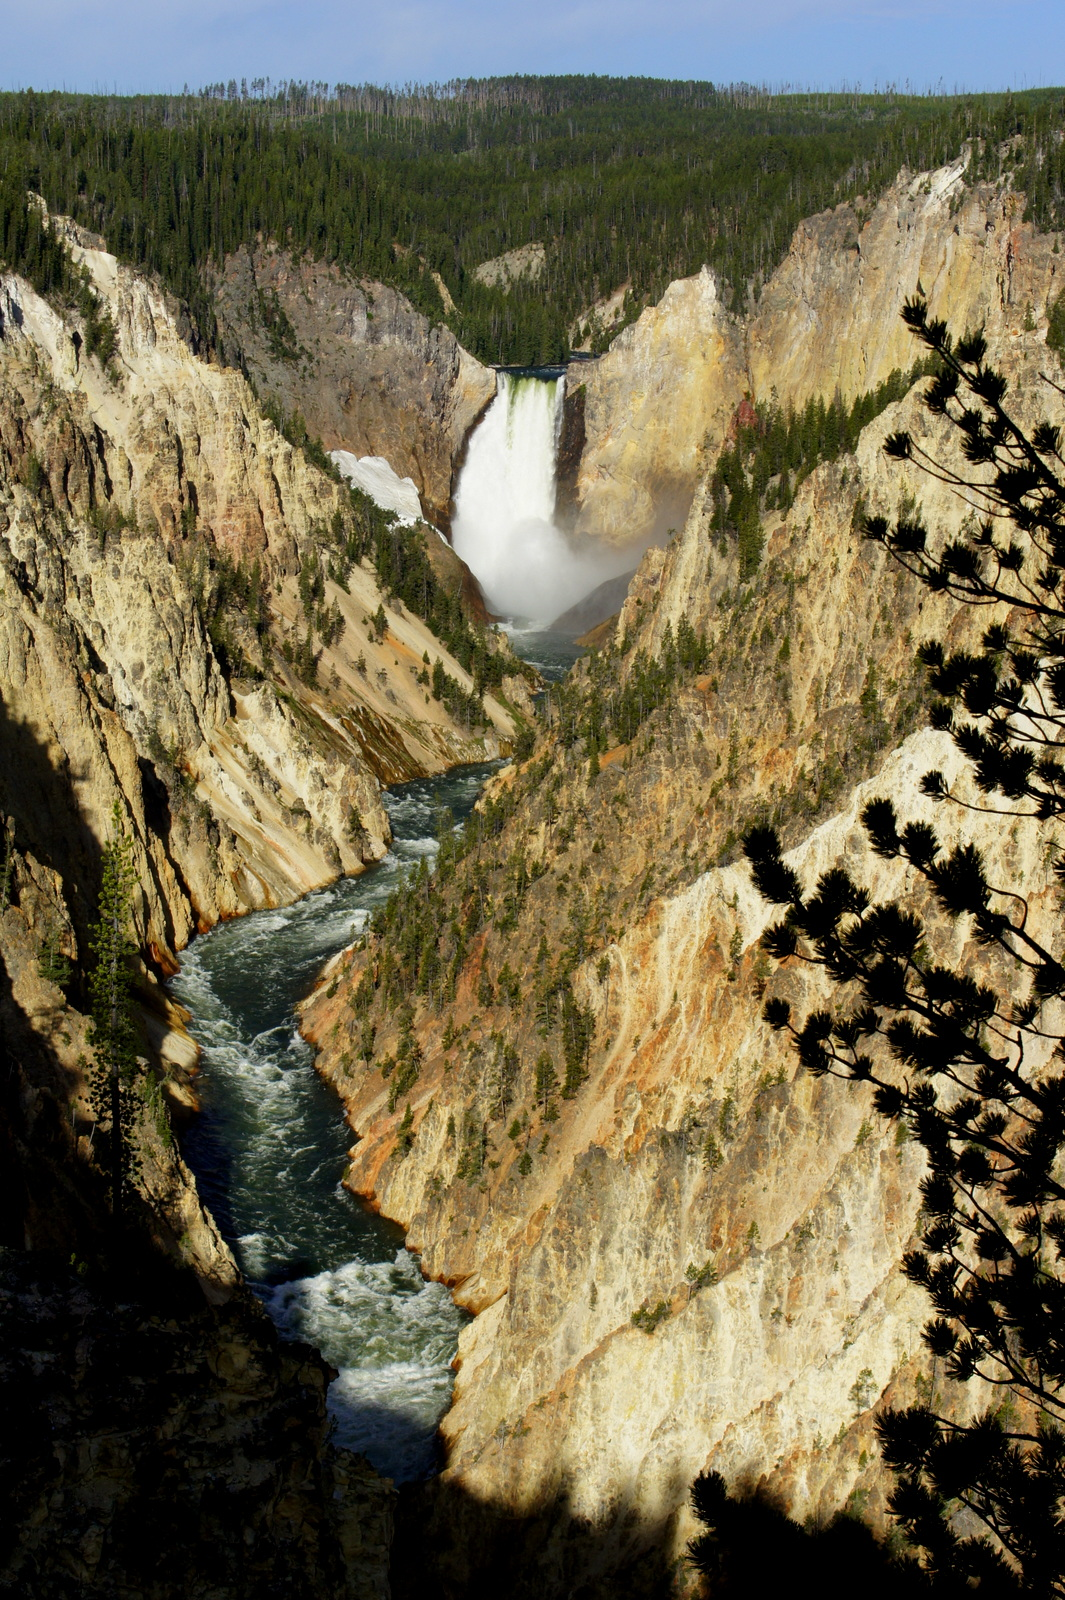 The aptly named Grand Canyon of Yellowstone. Amazing just like its counterpart to the south.